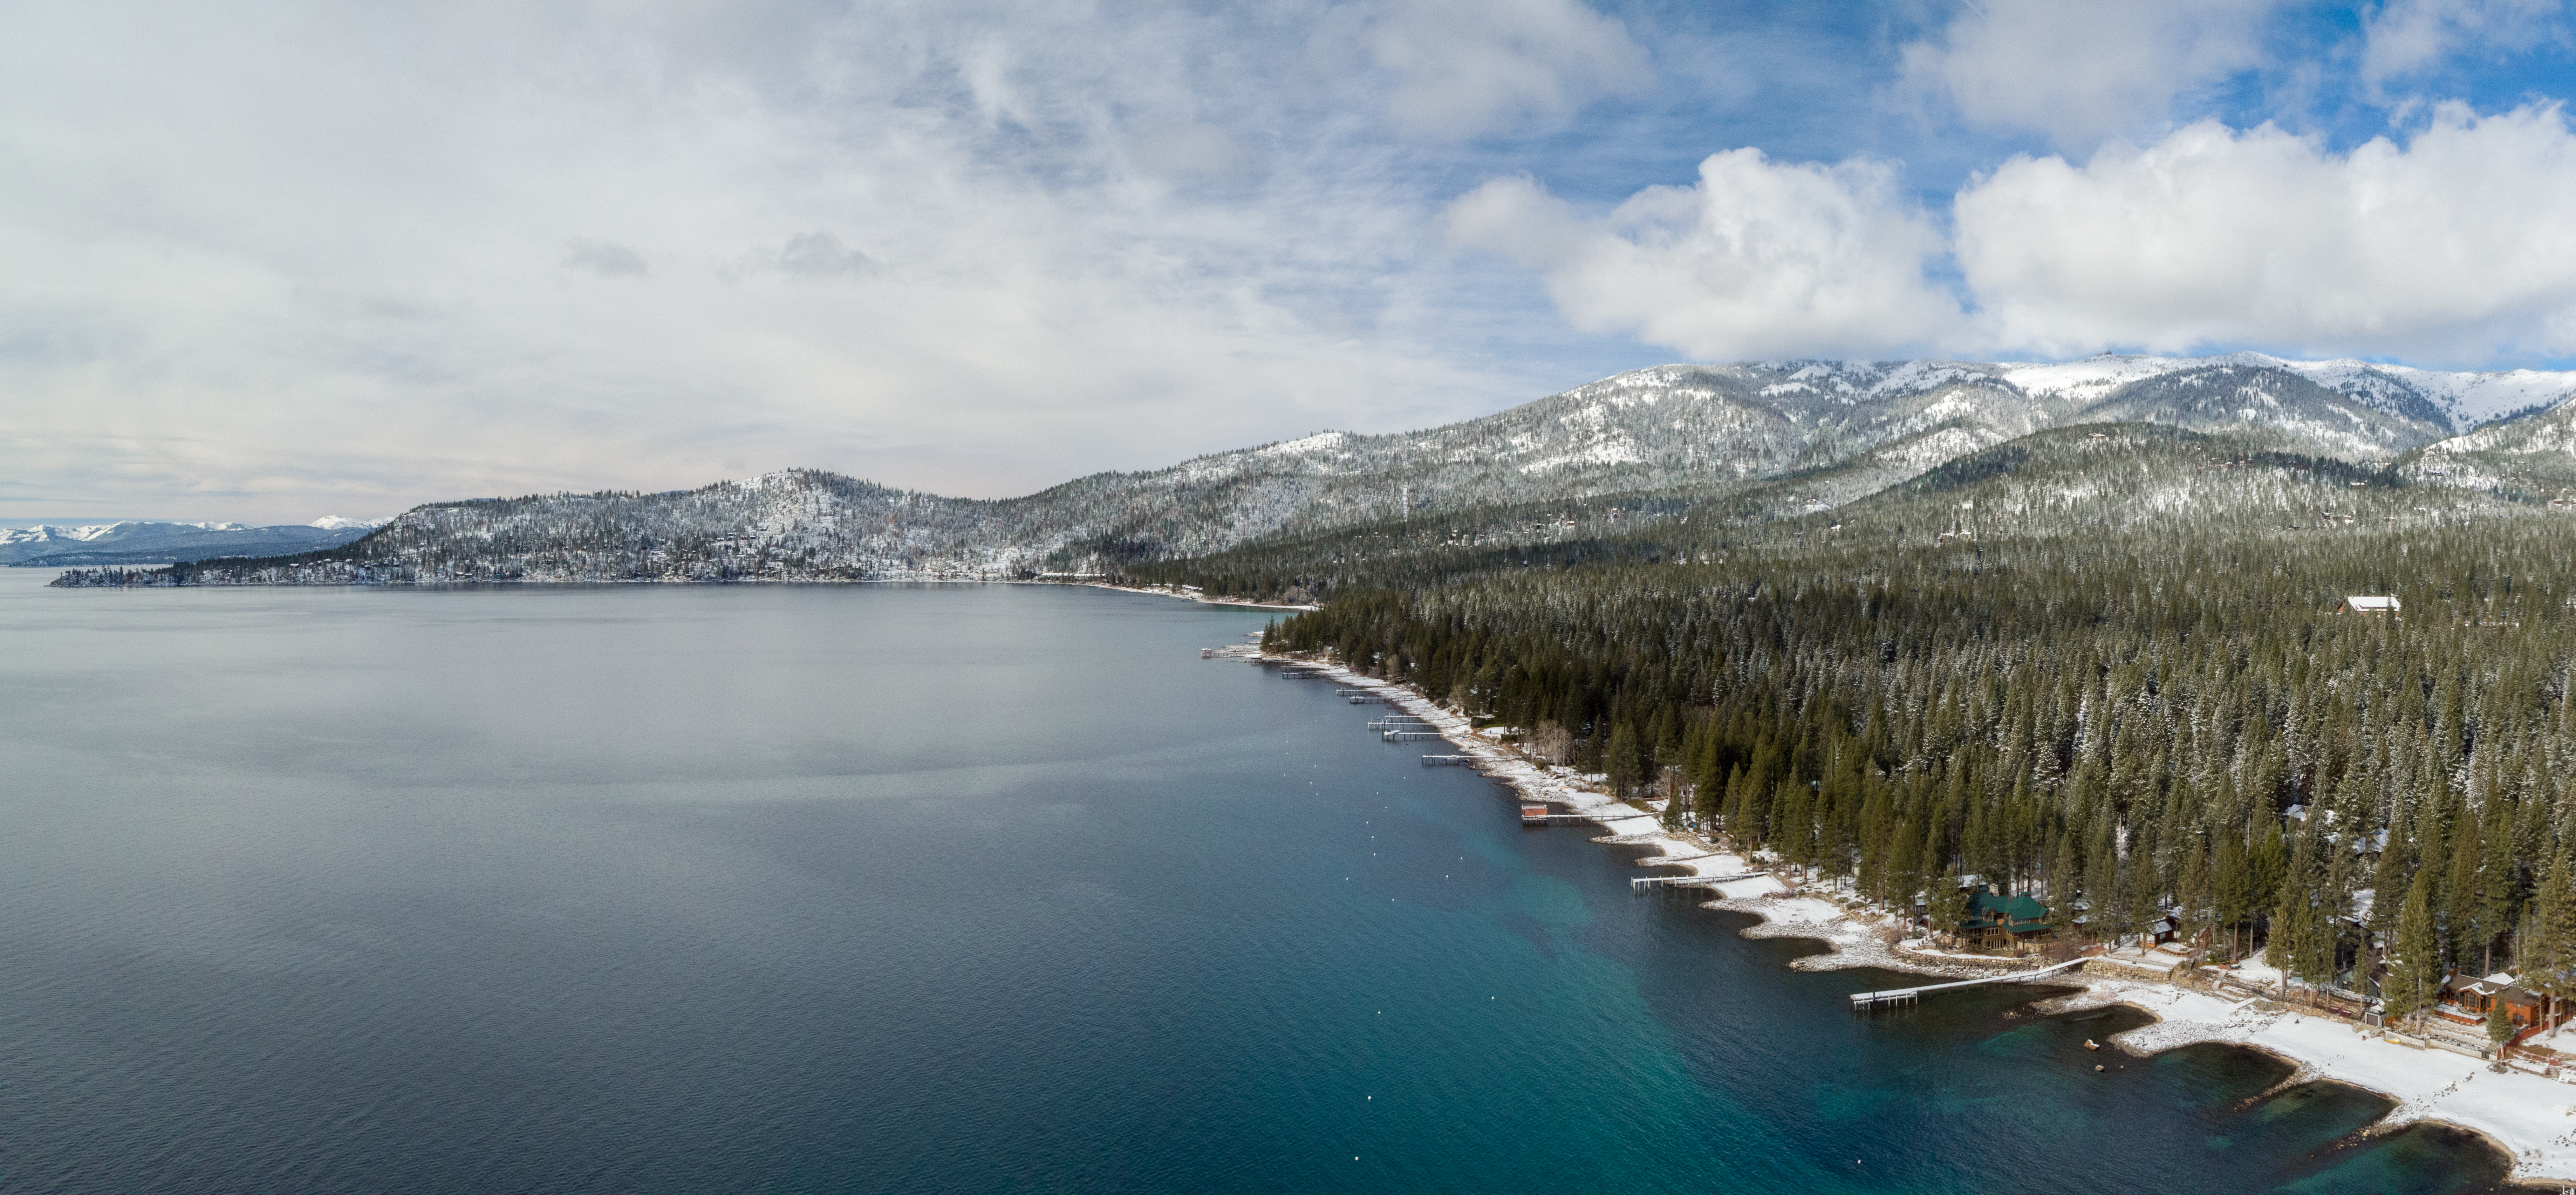 Incline Village, Lake Tahoe, Nevada, USA